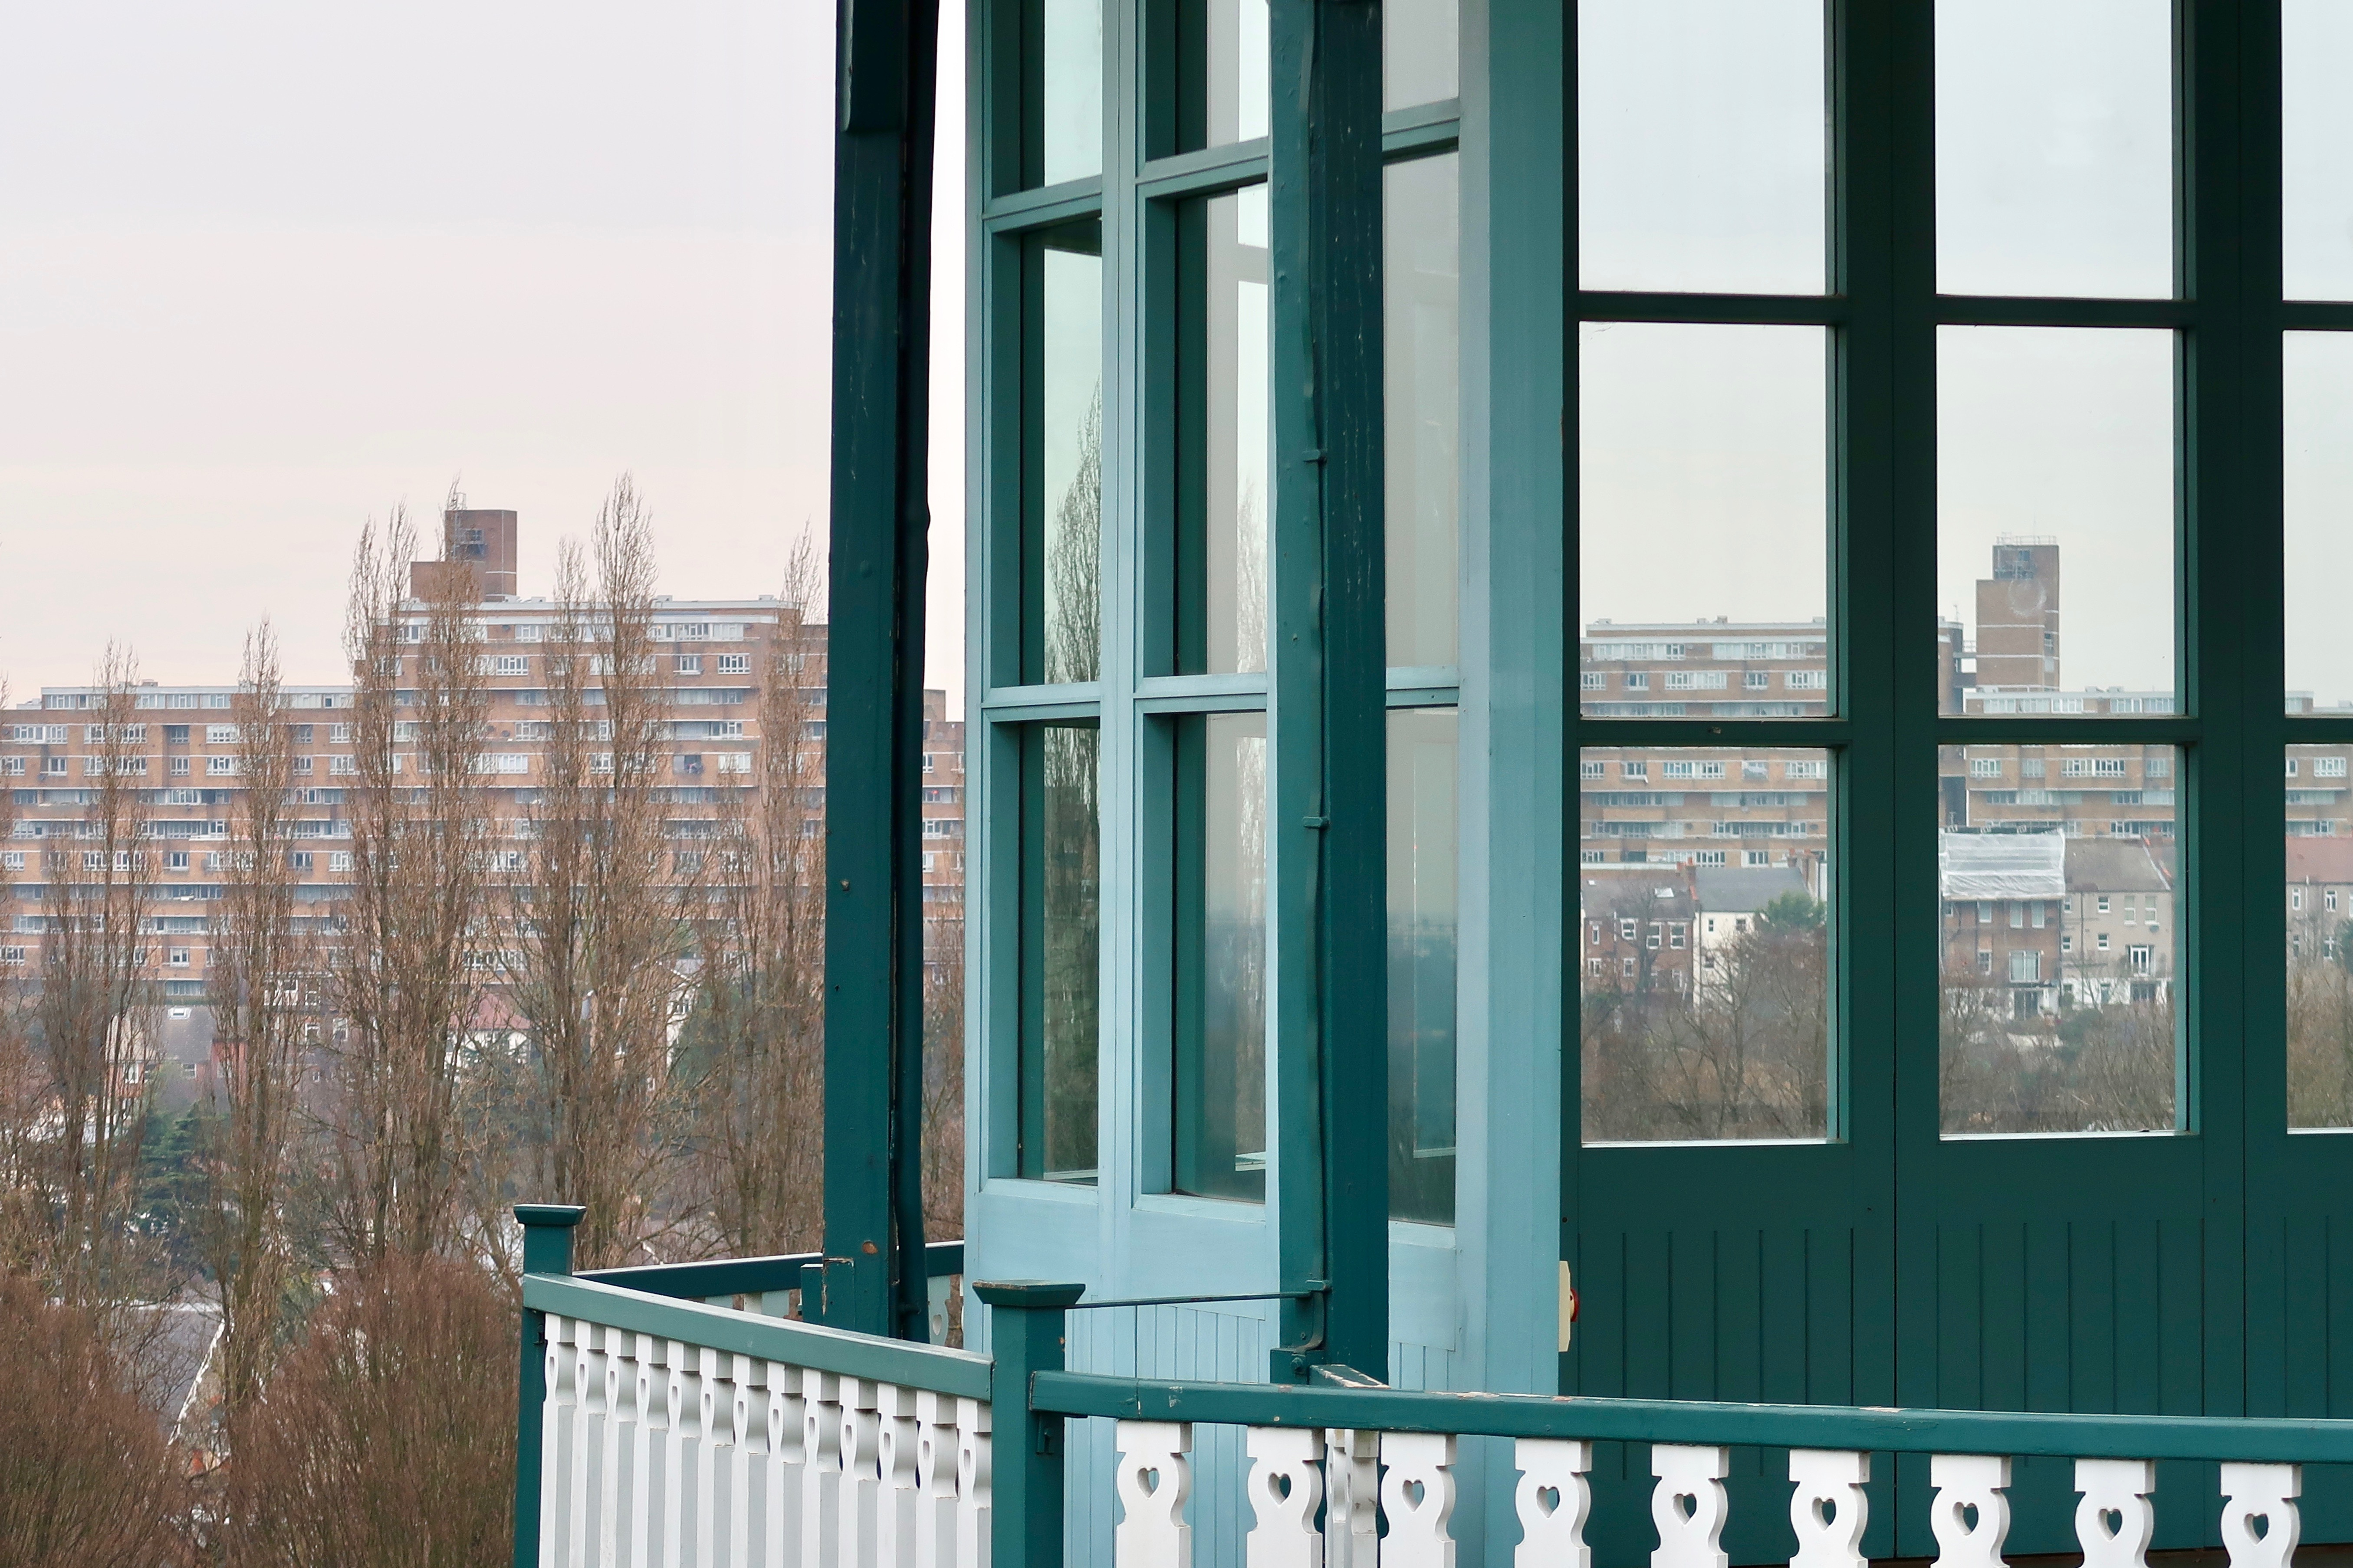 The Horniman Museum and Gardens view